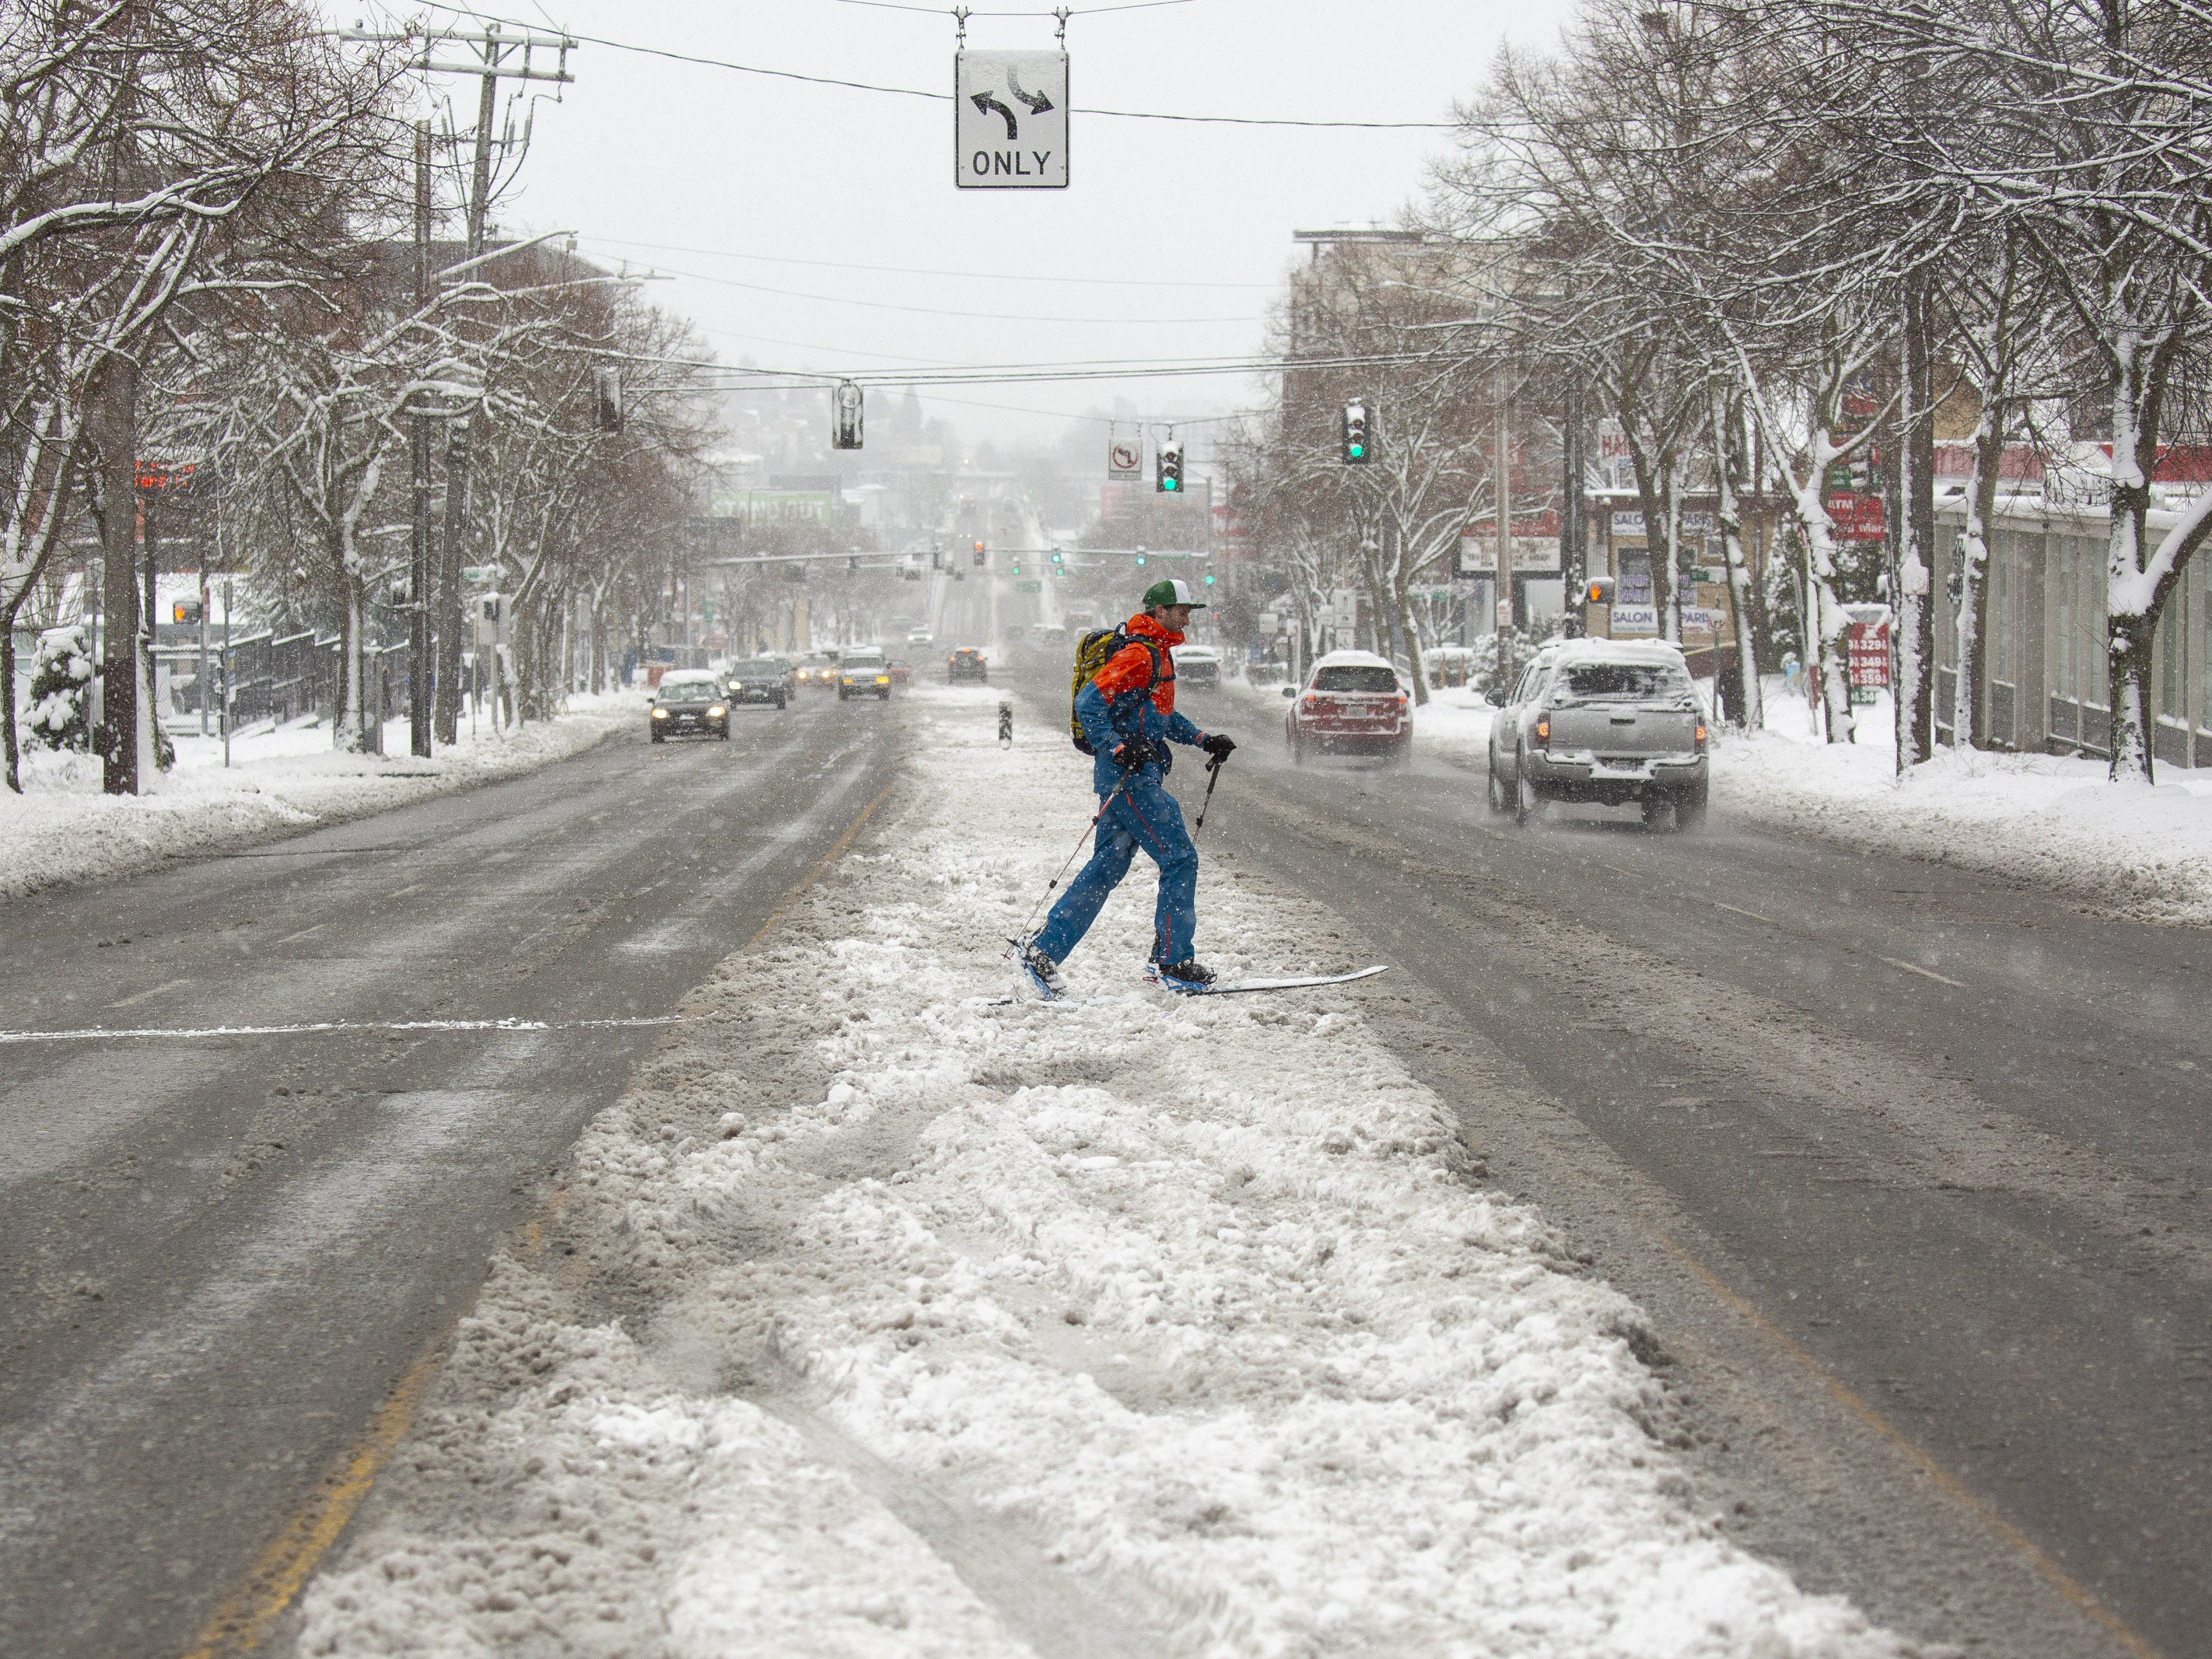 A man crosses a road on skis in the Ballard neighborhood after a large storm blanketed the city with snow on February 9, 2019 in Seattle, Washington.